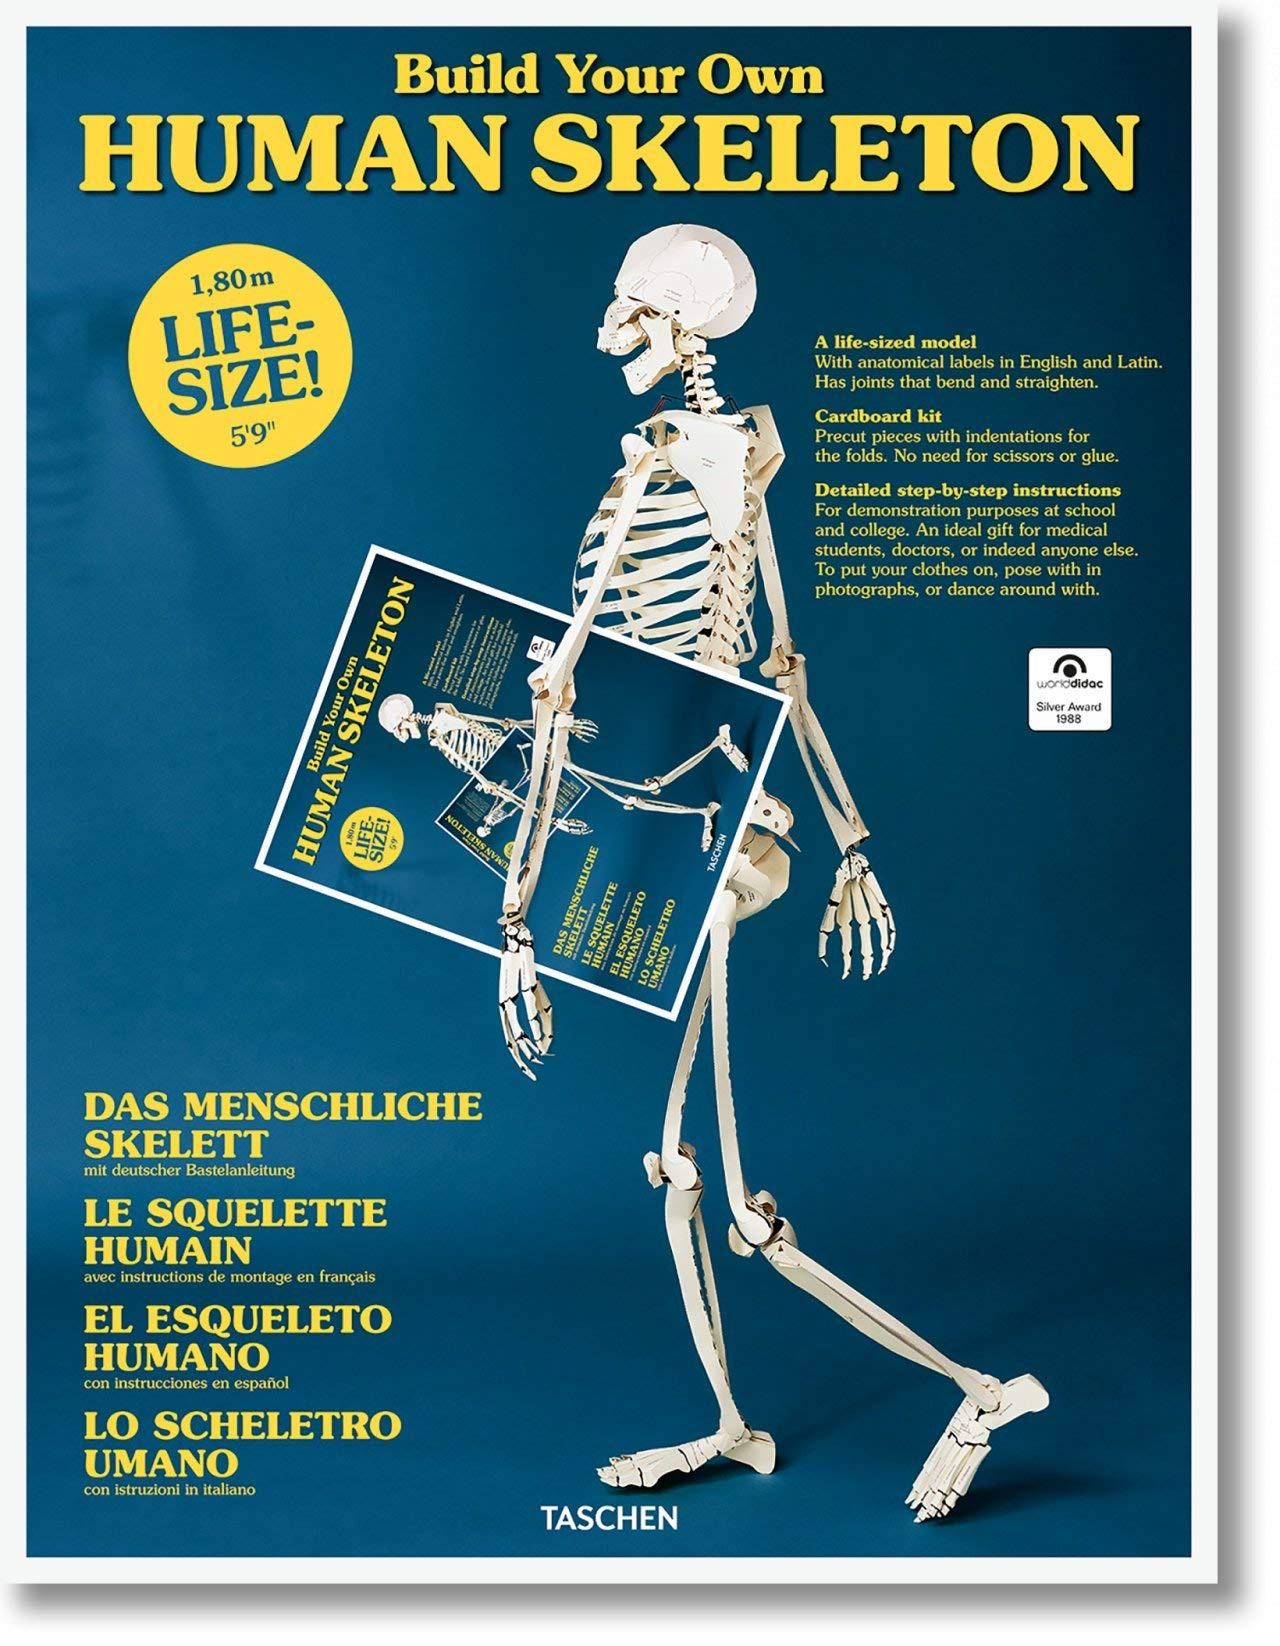 Build Your Own Human Skeleton Life Size Taschen 9783836572545